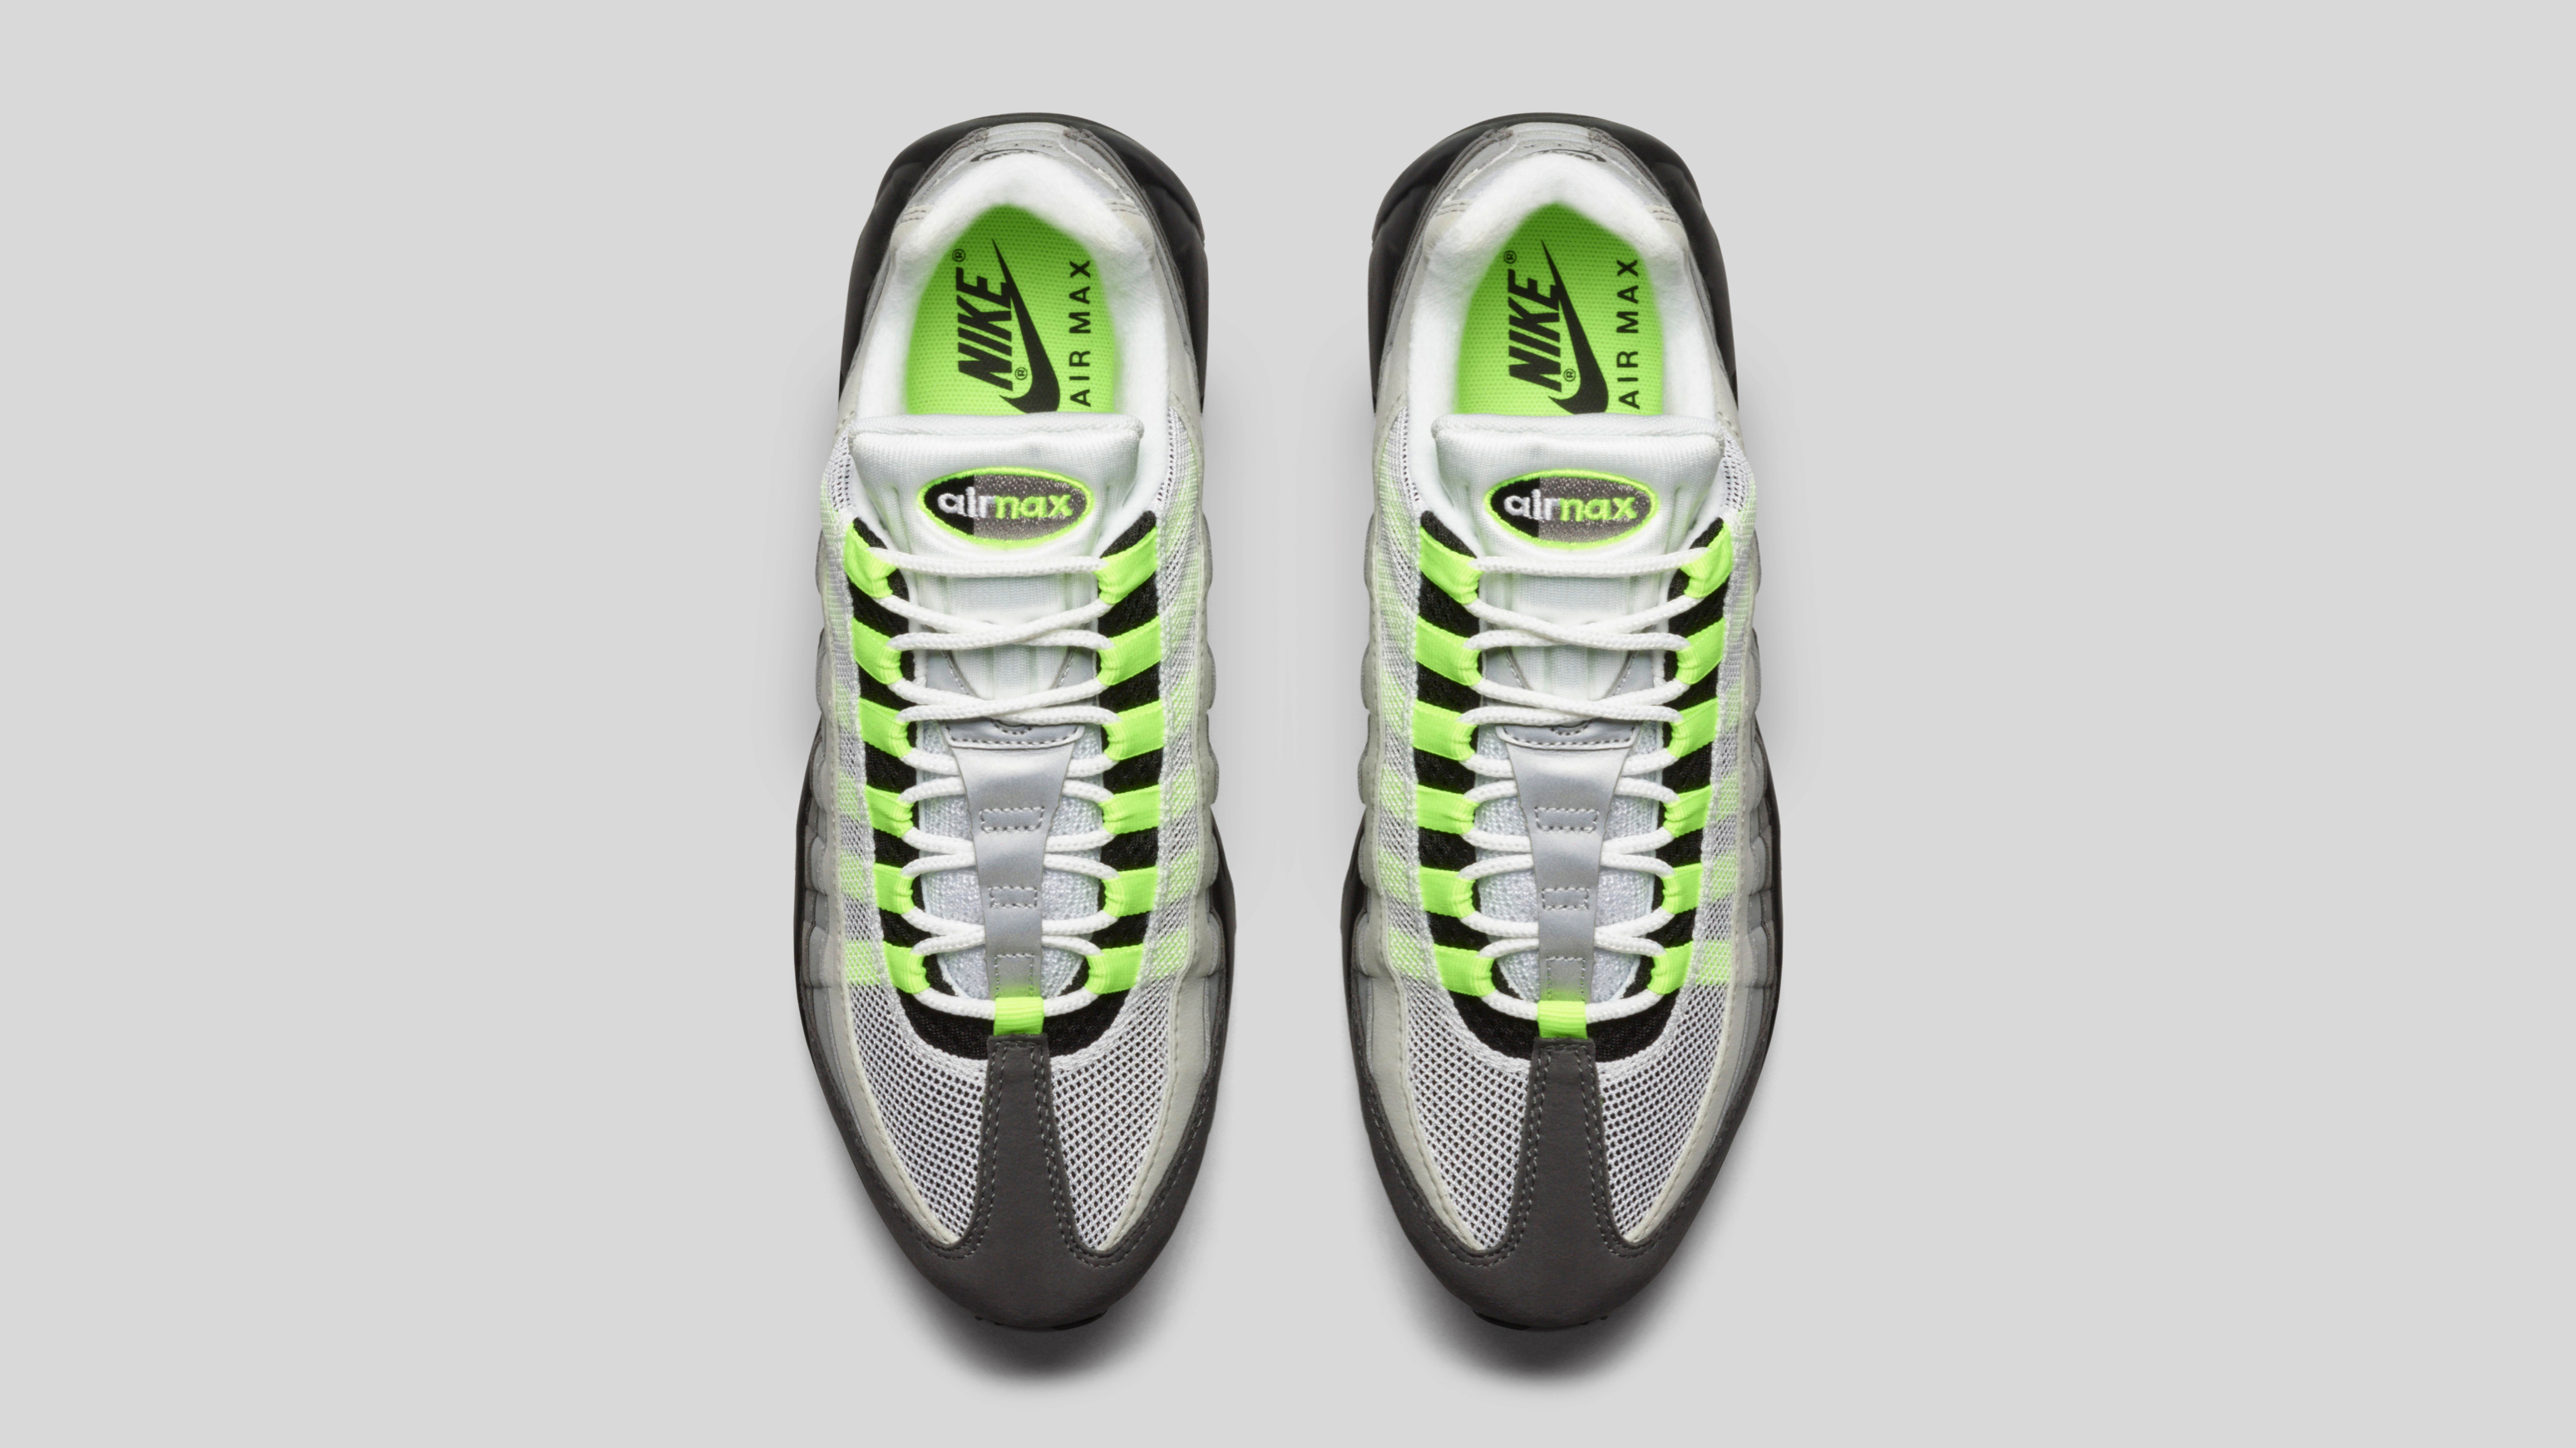 Nike Air Max 95 OG: The Legend Of Future Past